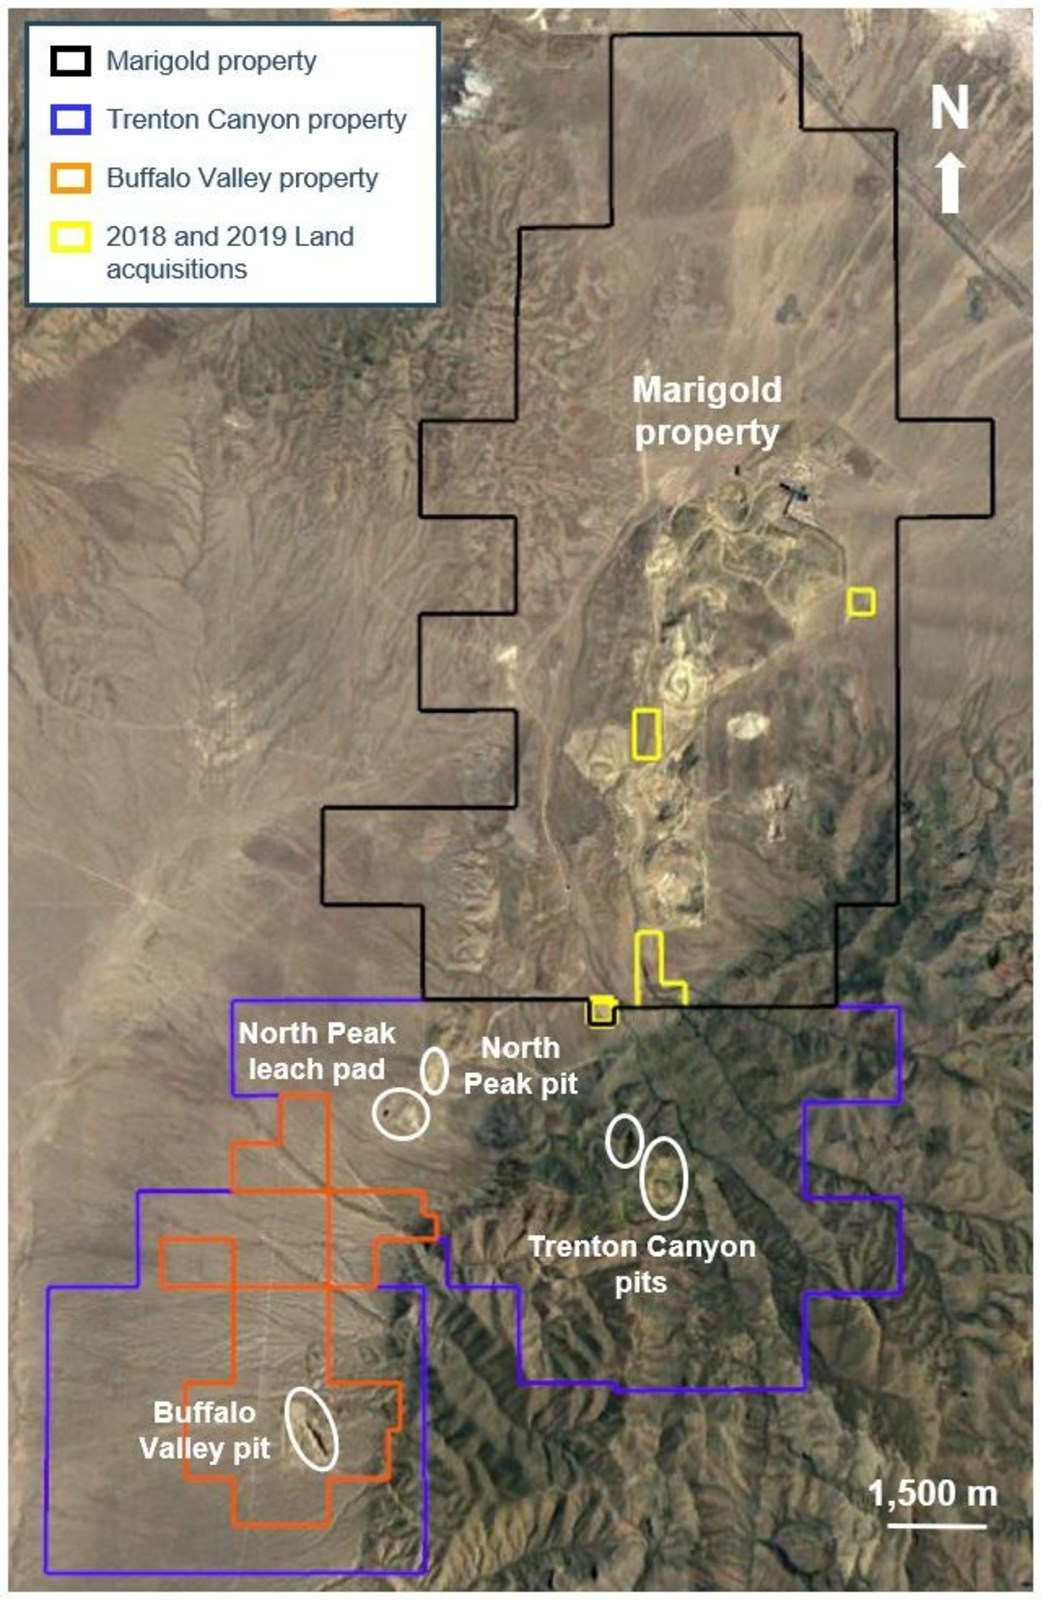 Figure 1: Location of the Trenton Canyon, Buffalo Valley and Marigold properties in Nevada, U.S.